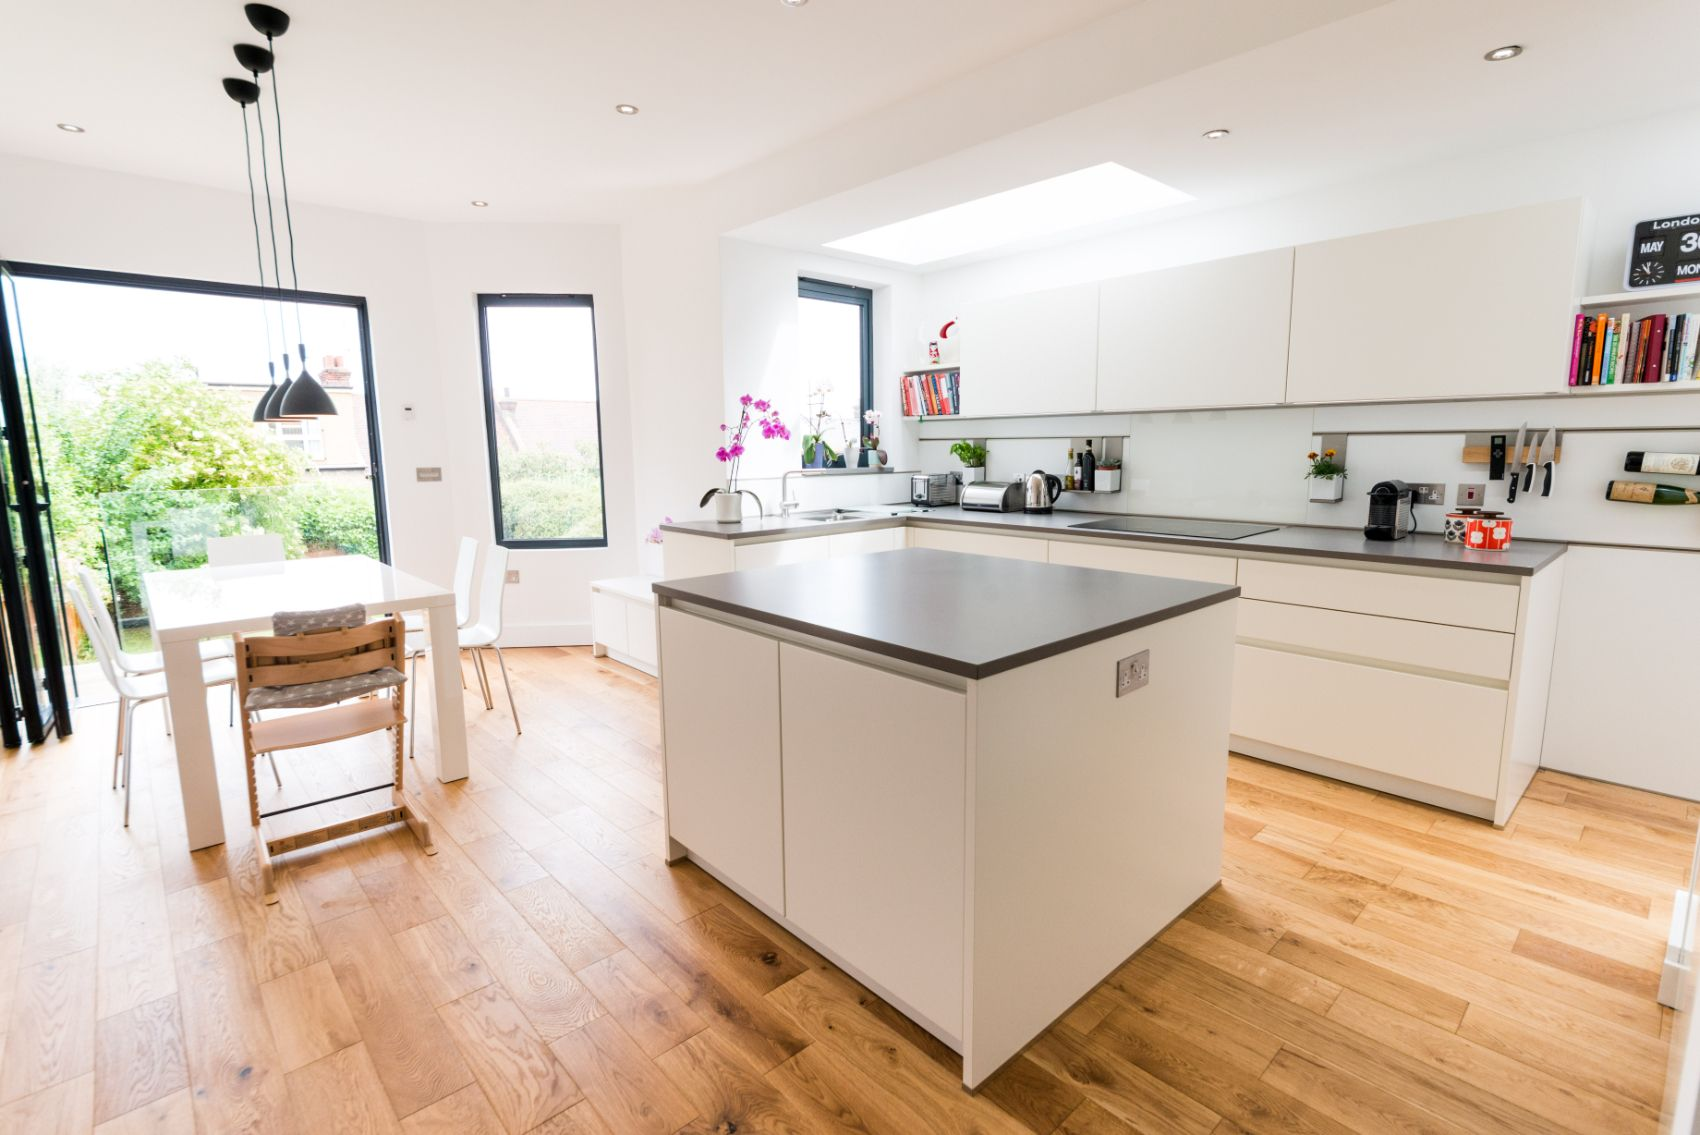 Bon A White Matt Handleless German Kitchen In Alexandra Park, London. The  Worktop Is Silestone And The Appliances Are Siemens.